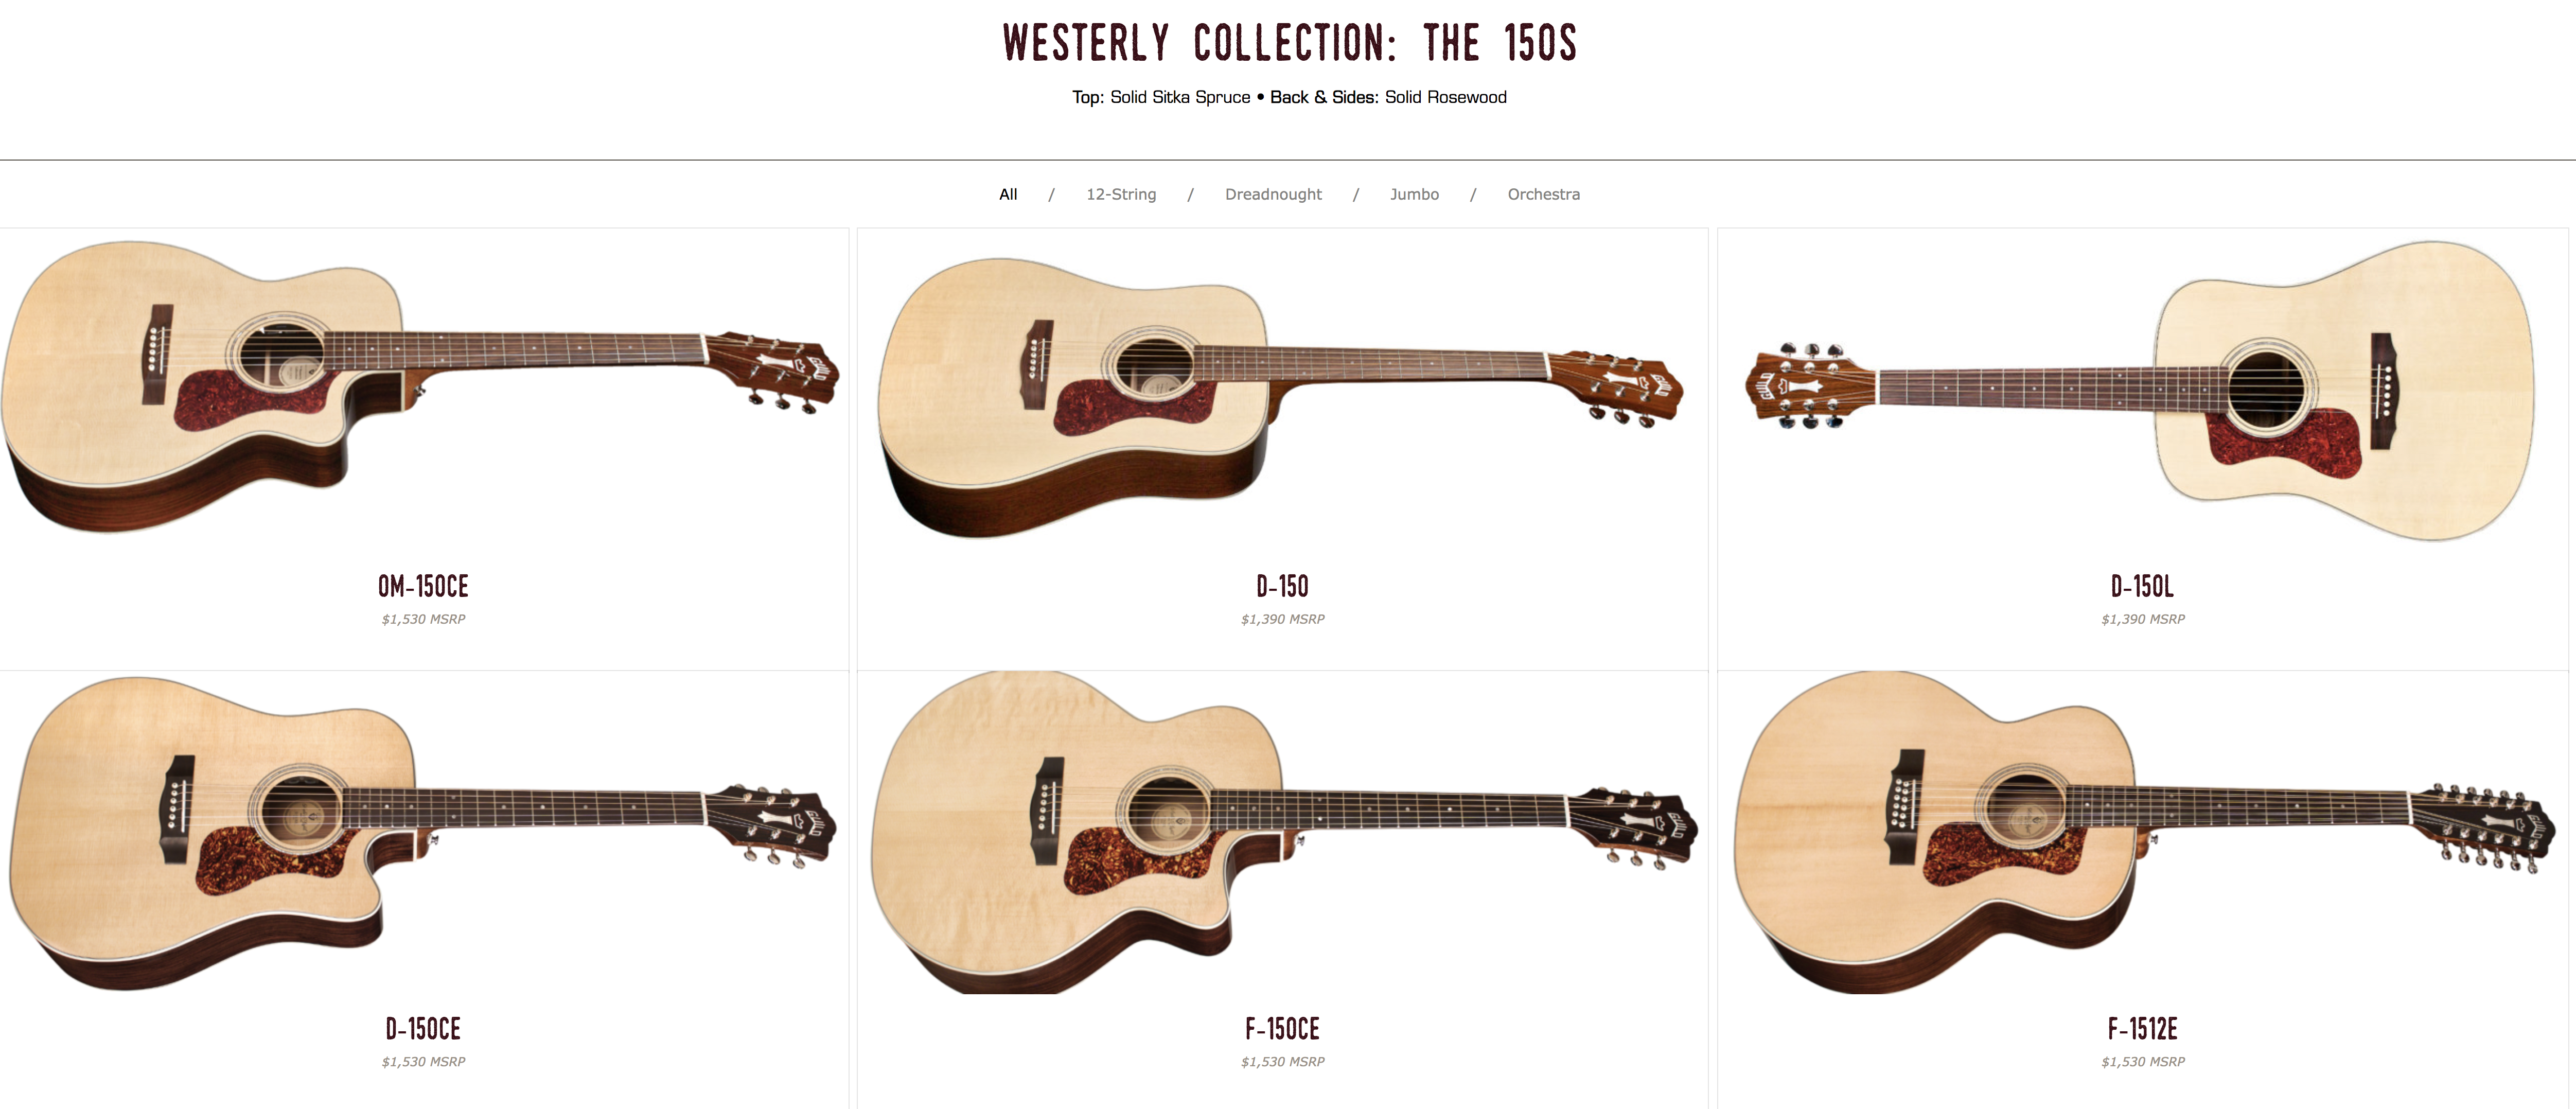 Guild Westerly The 150's